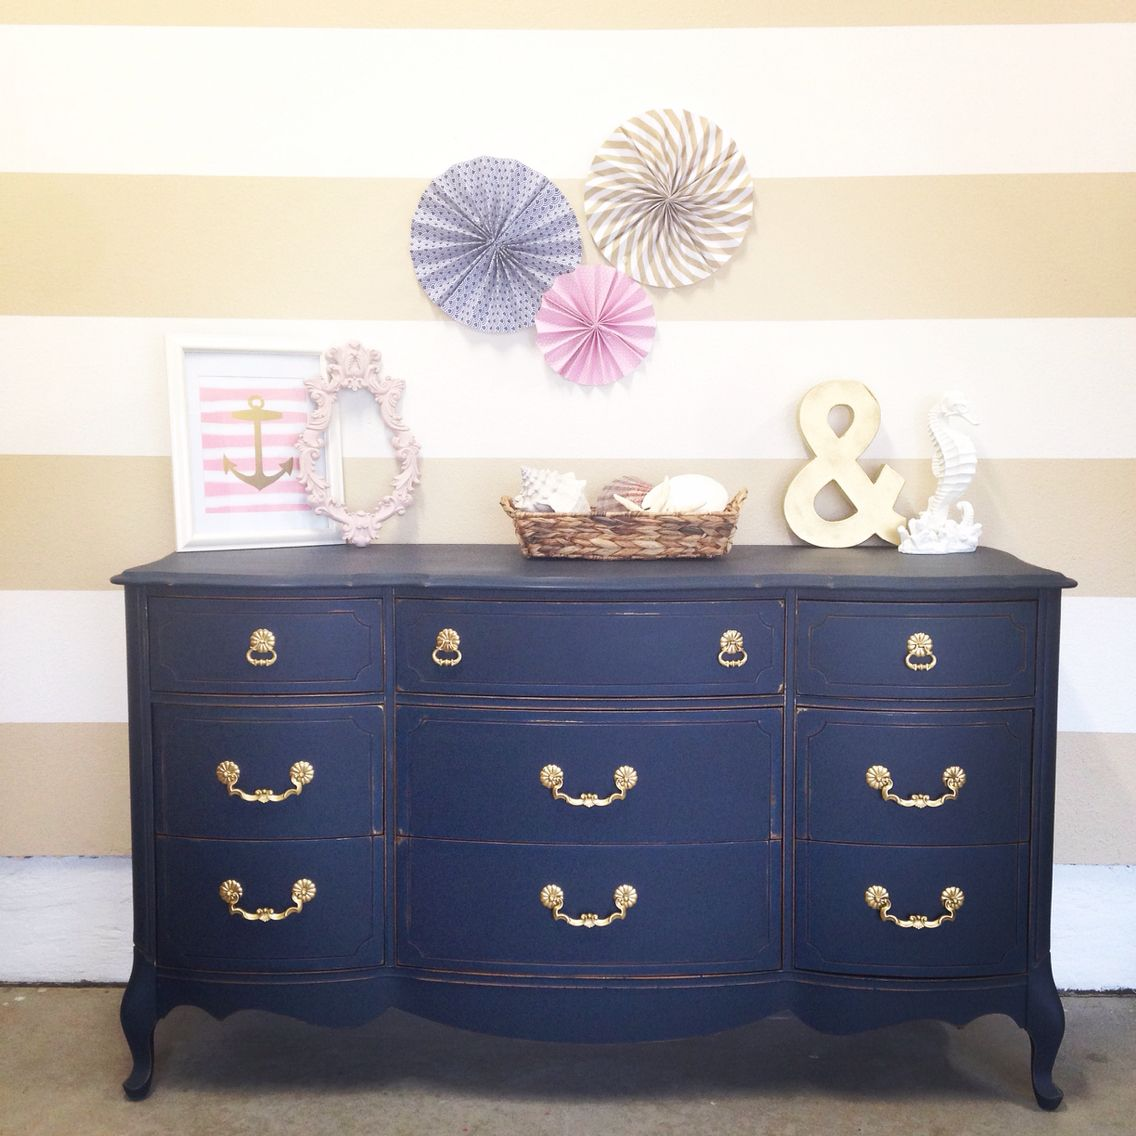 custom mix of annie sloan chalkpaint to get this navy blue color napoleonic blue graphite and. Black Bedroom Furniture Sets. Home Design Ideas